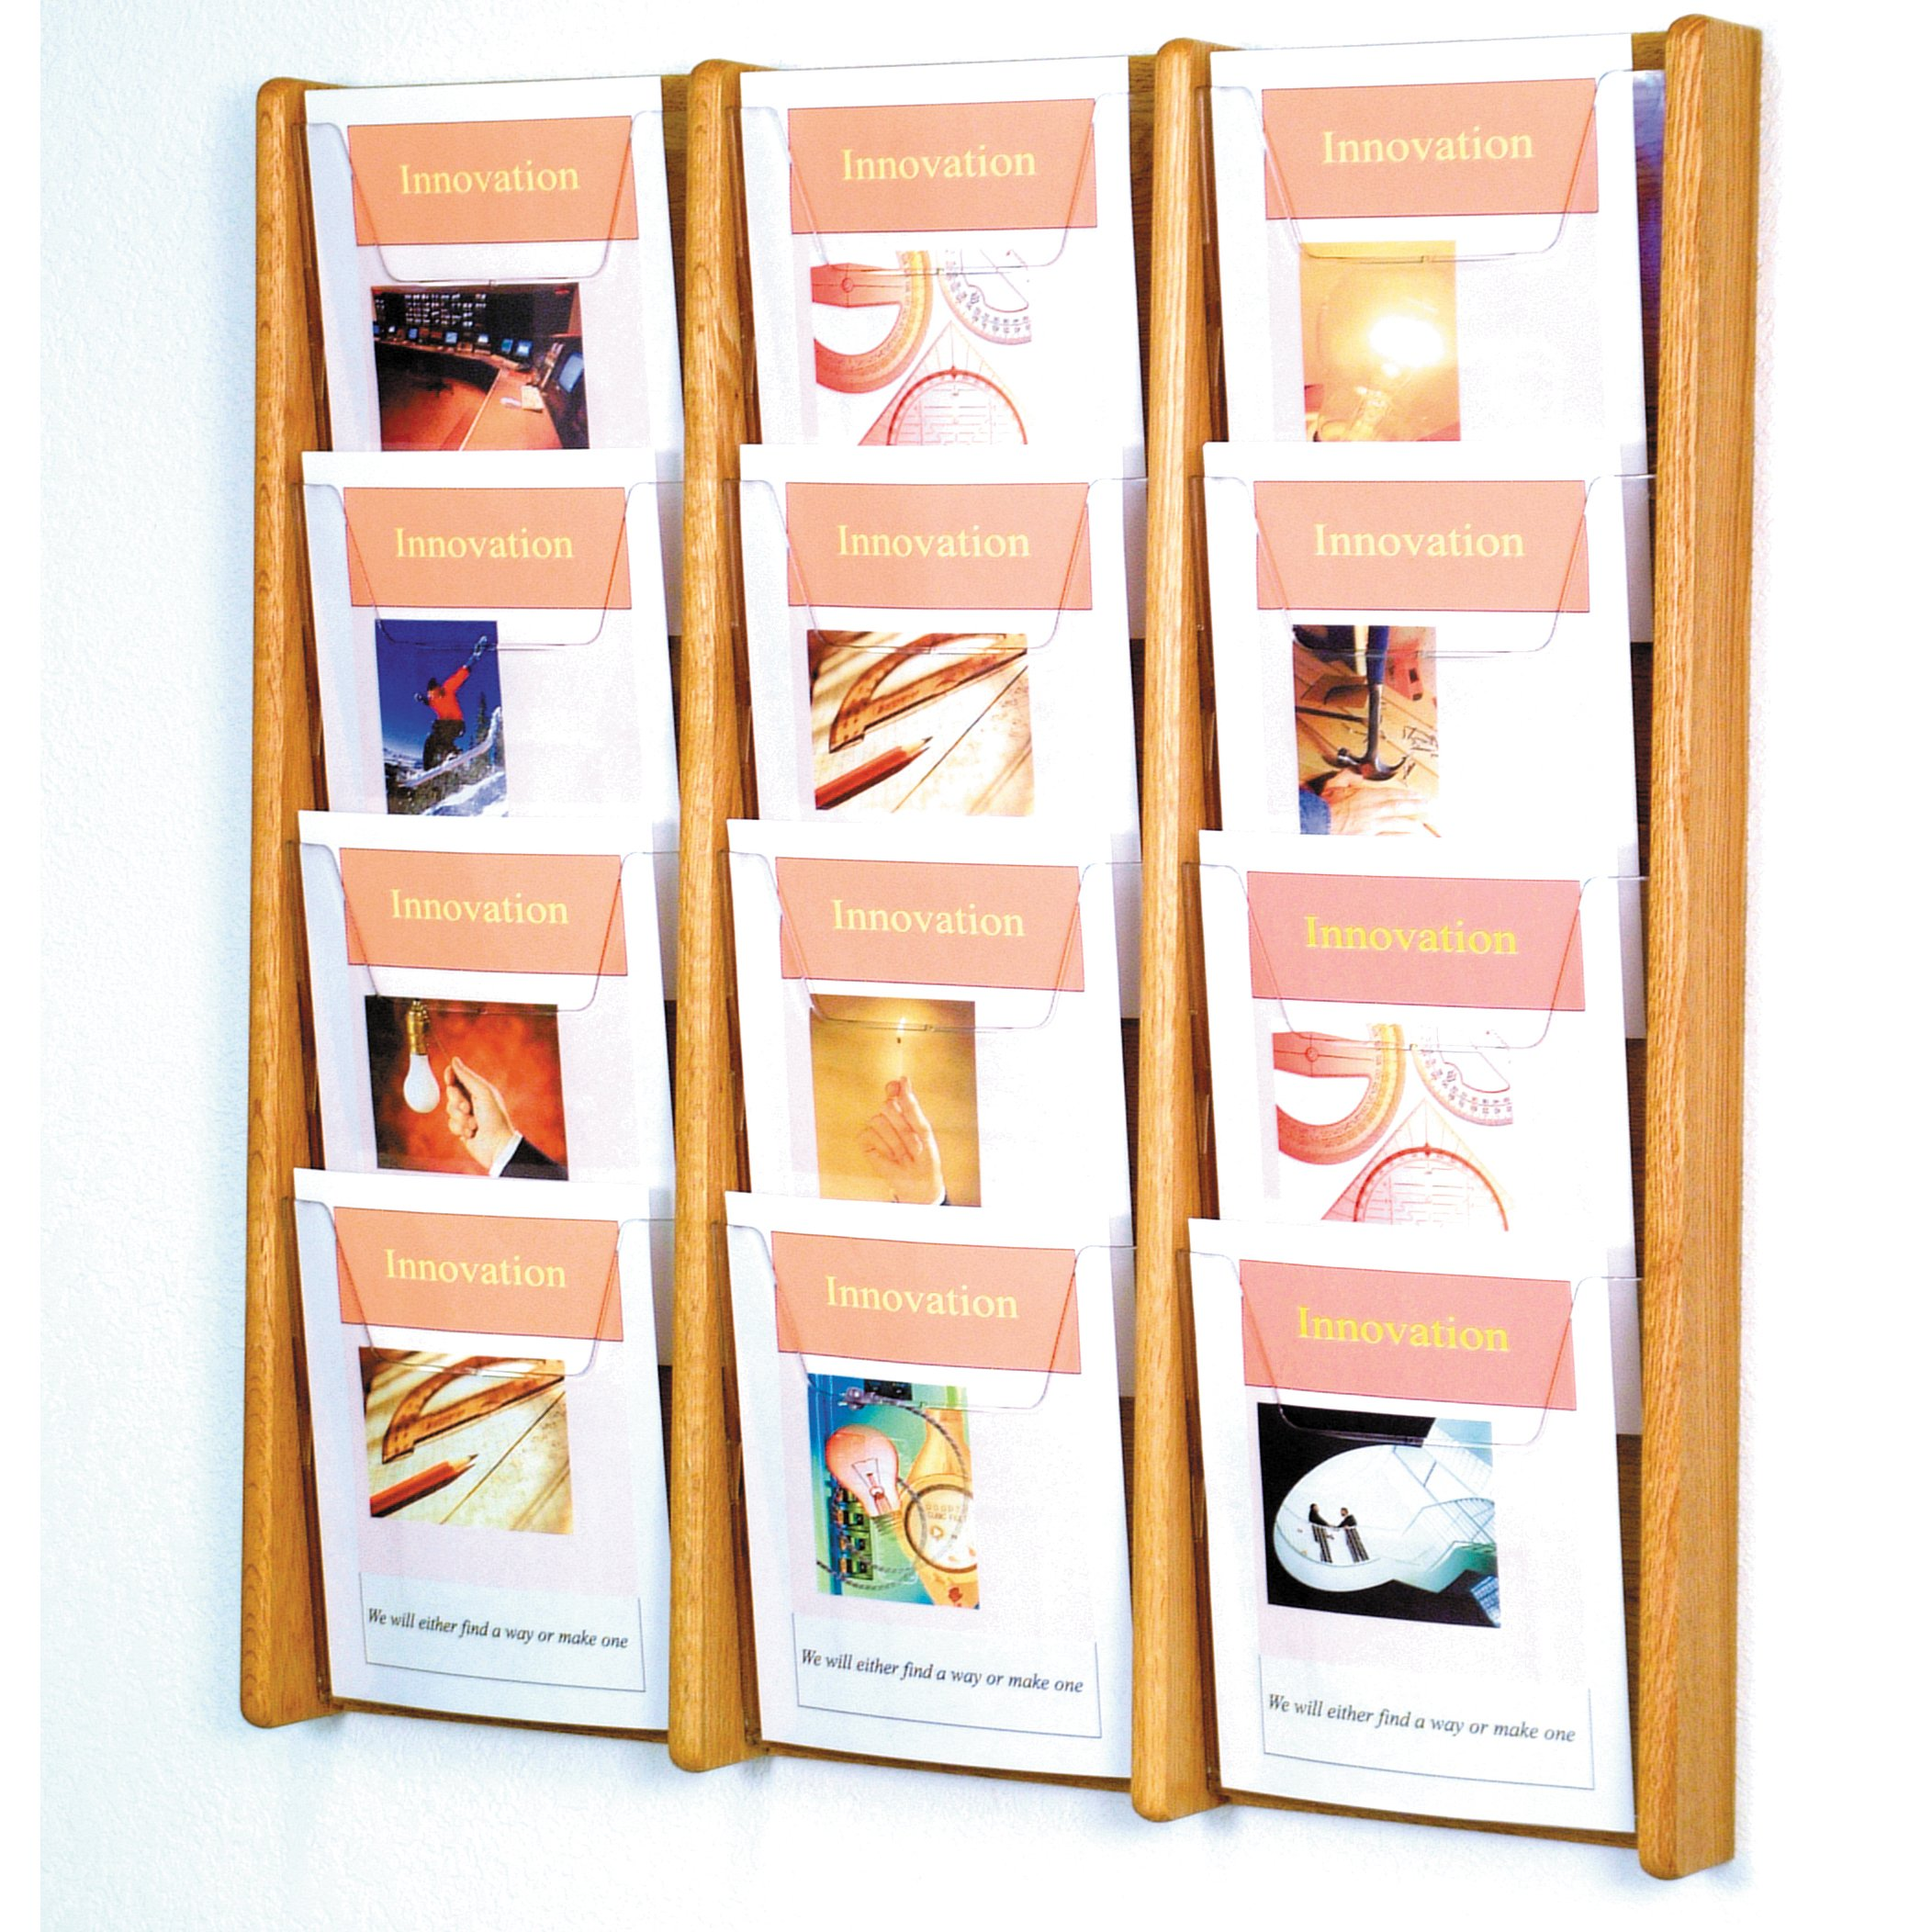 DMD Literature Display, 12 Pocket, Solid Oak and Acrylic Wall Mount Rack, Light Oak Wood Finish by Discount Medical Depot LLC